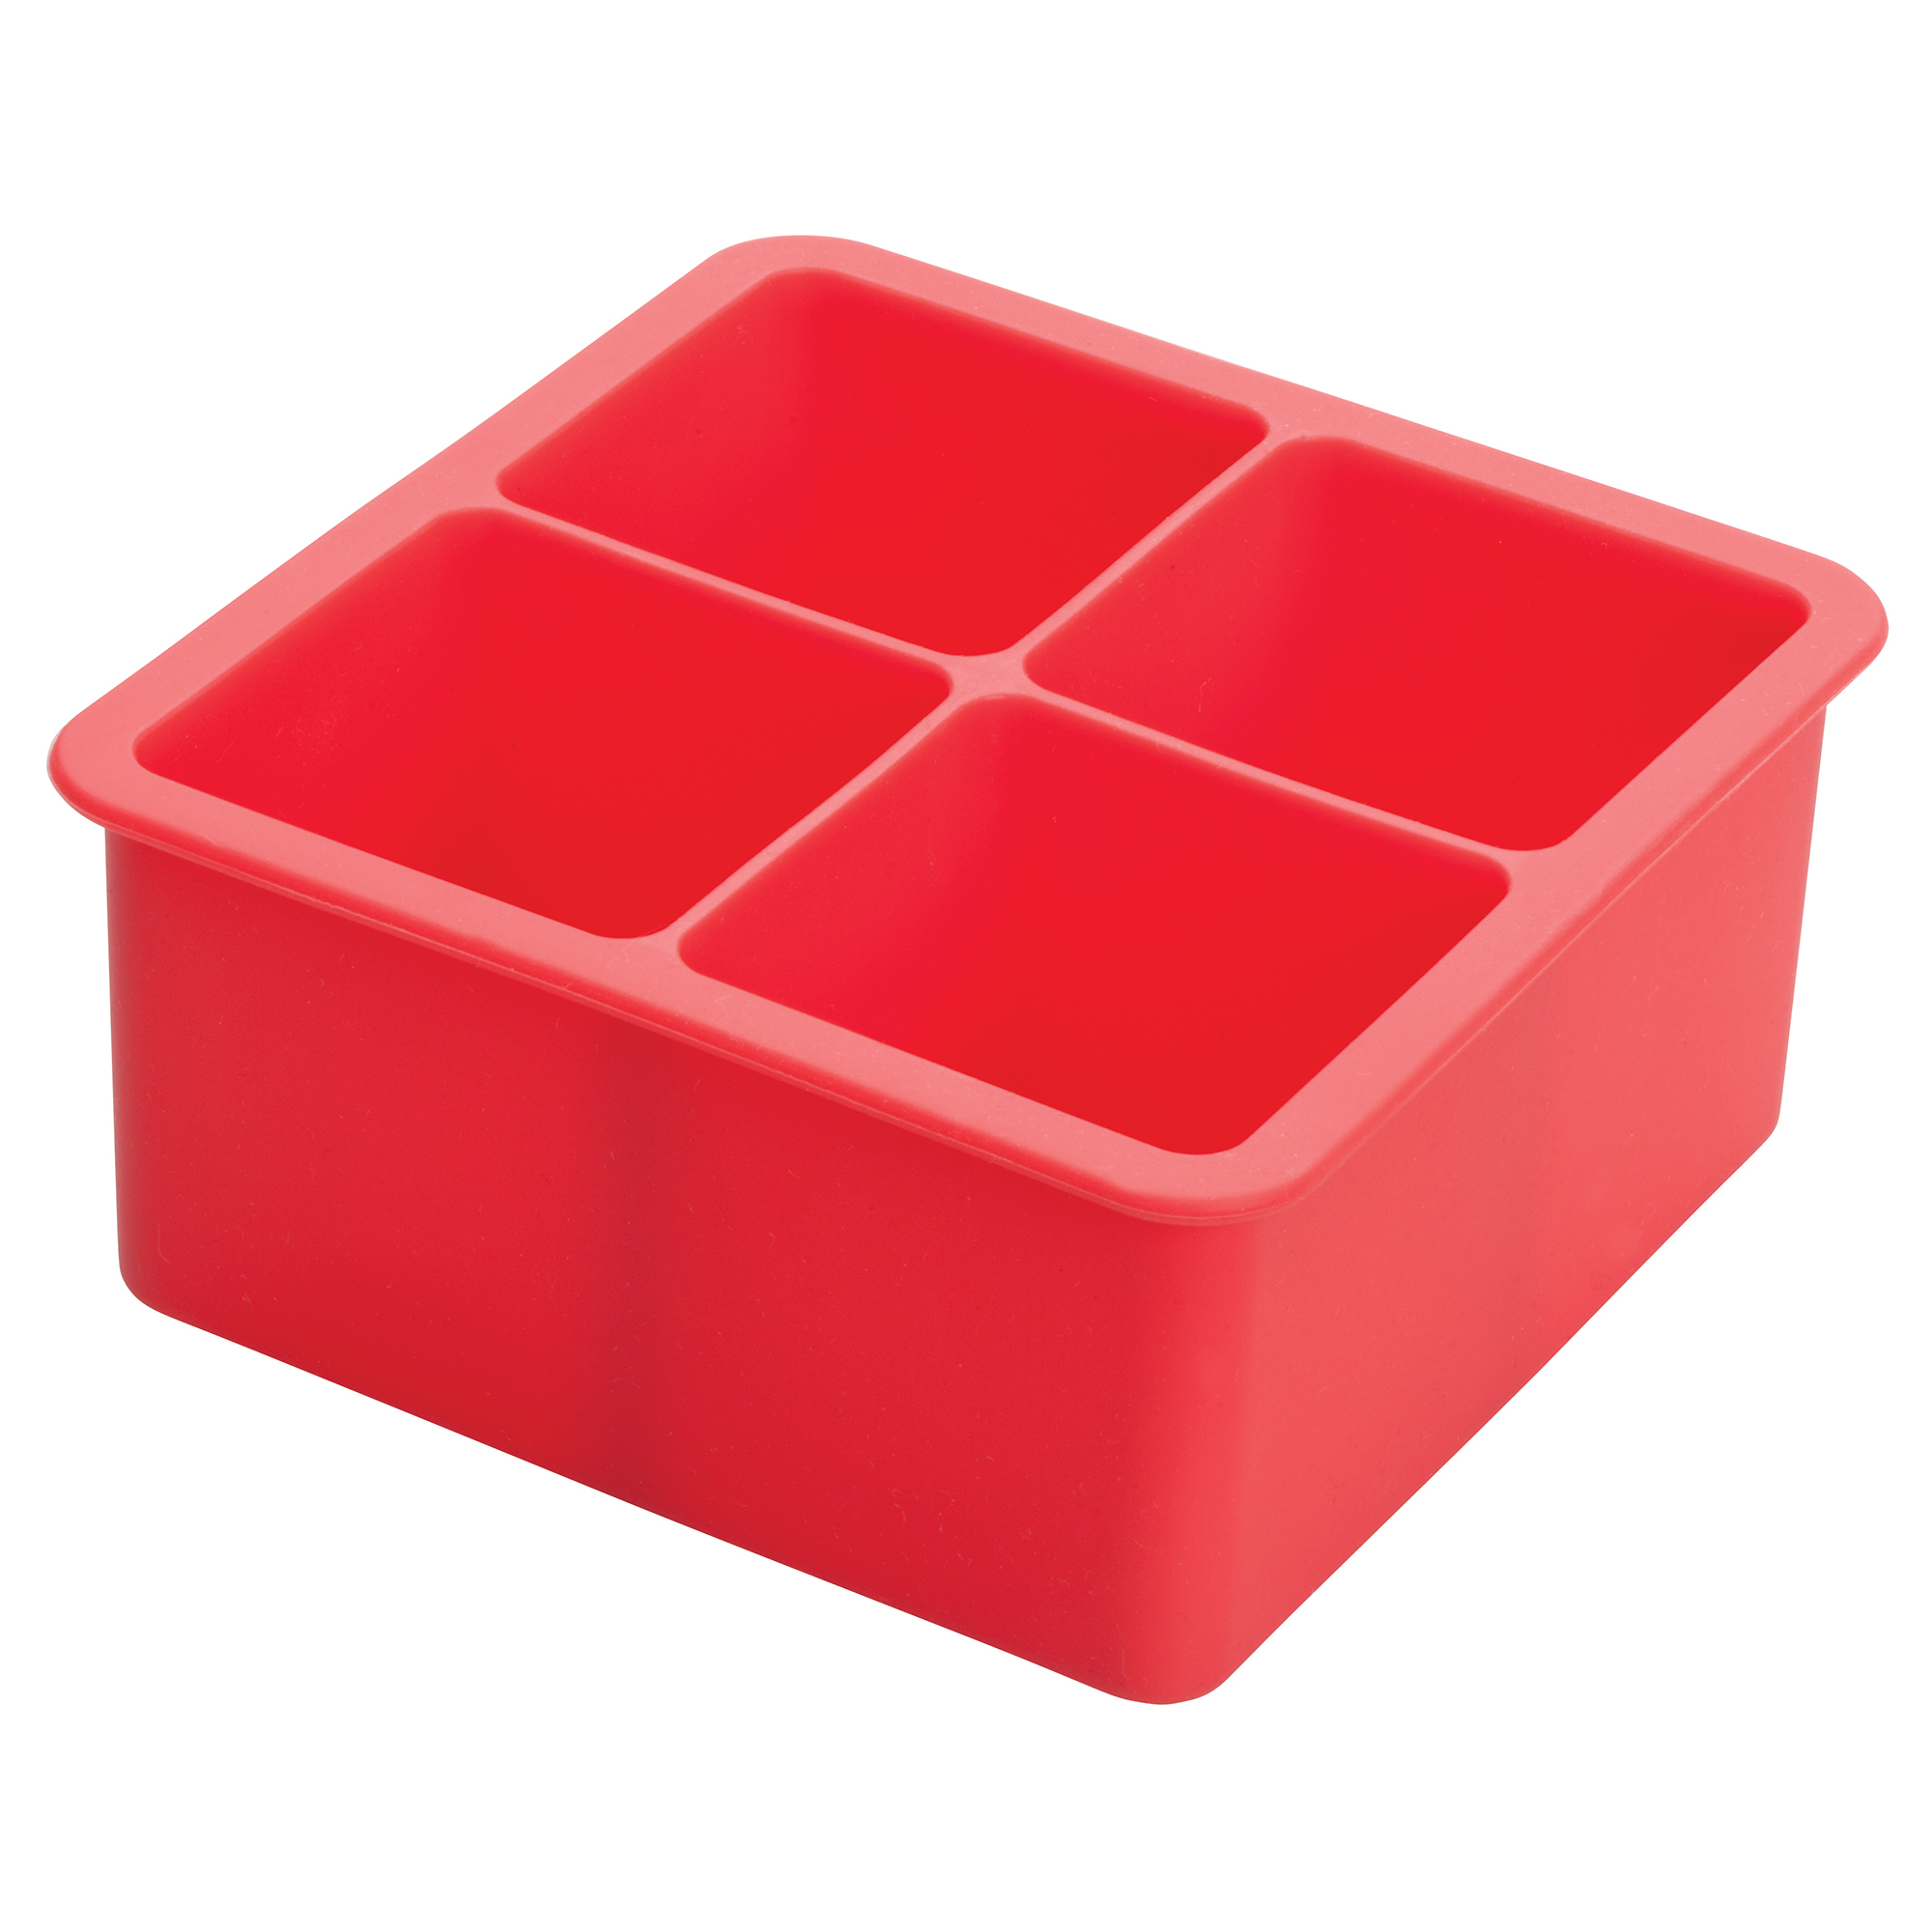 2050-154 Winco ICCT-4R ice cube tray